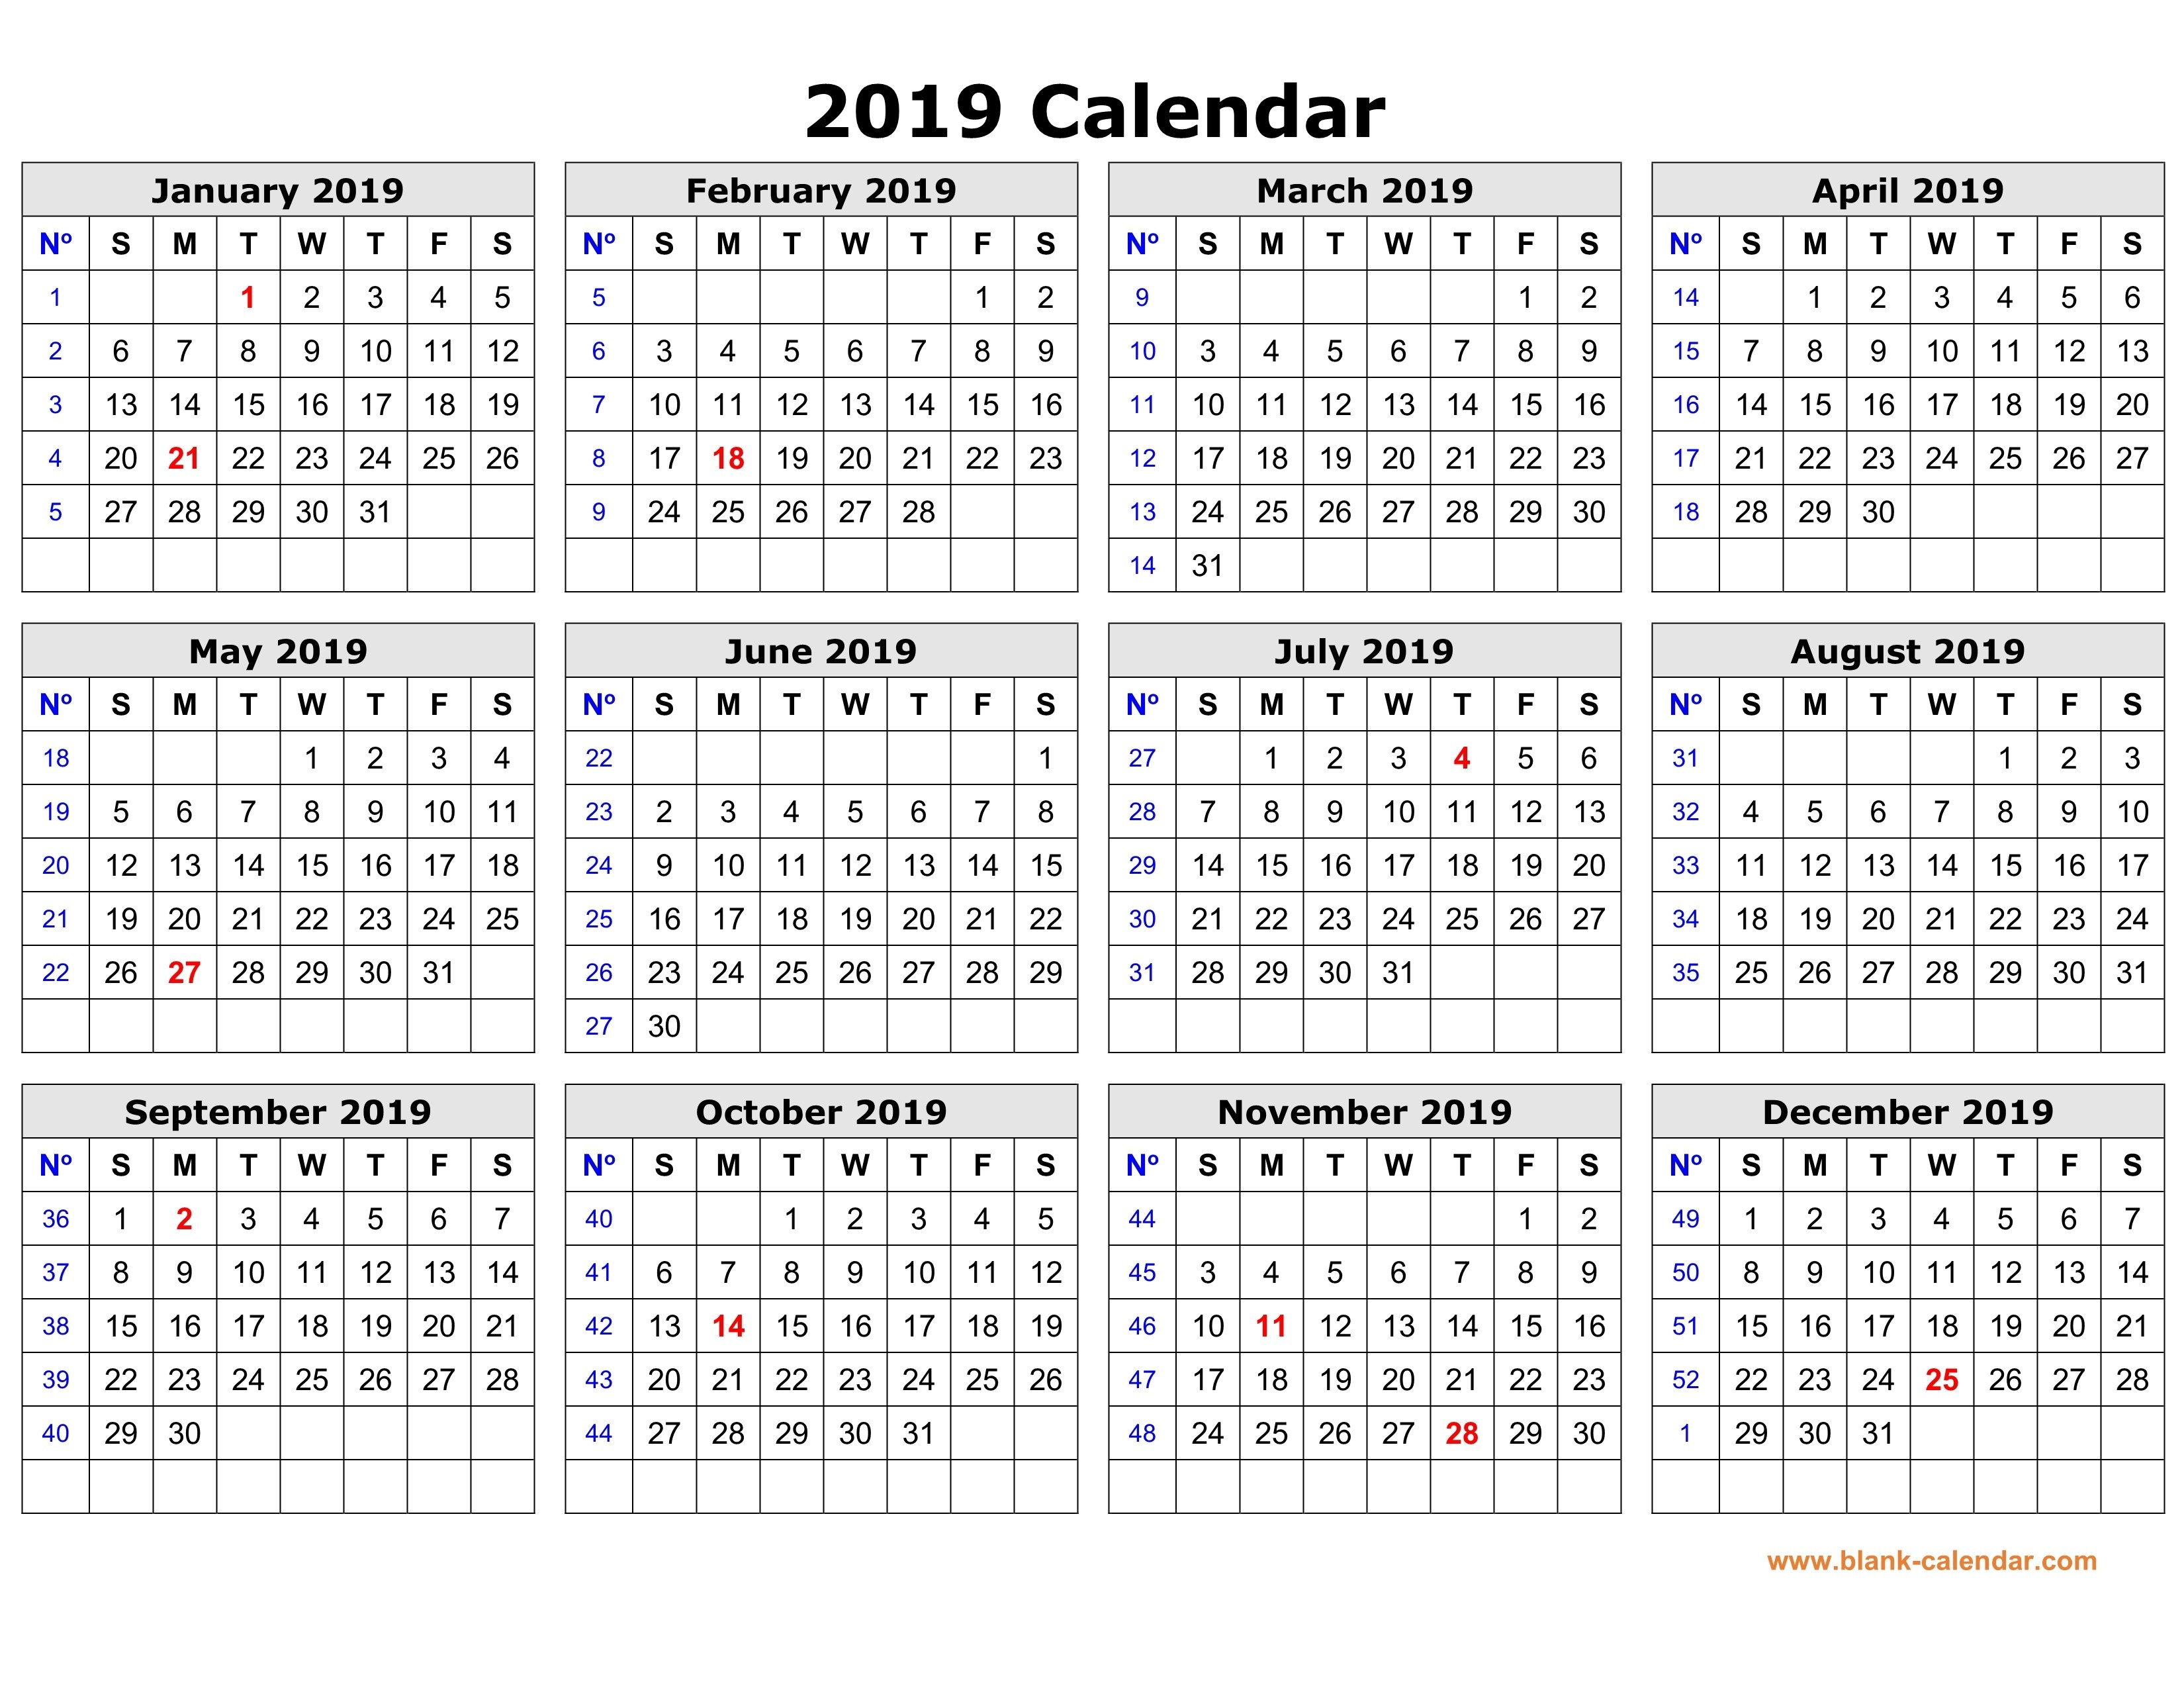 Free Download Printable Calendar 2019 In One Page, Clean Design. Calendar 2019 For Print